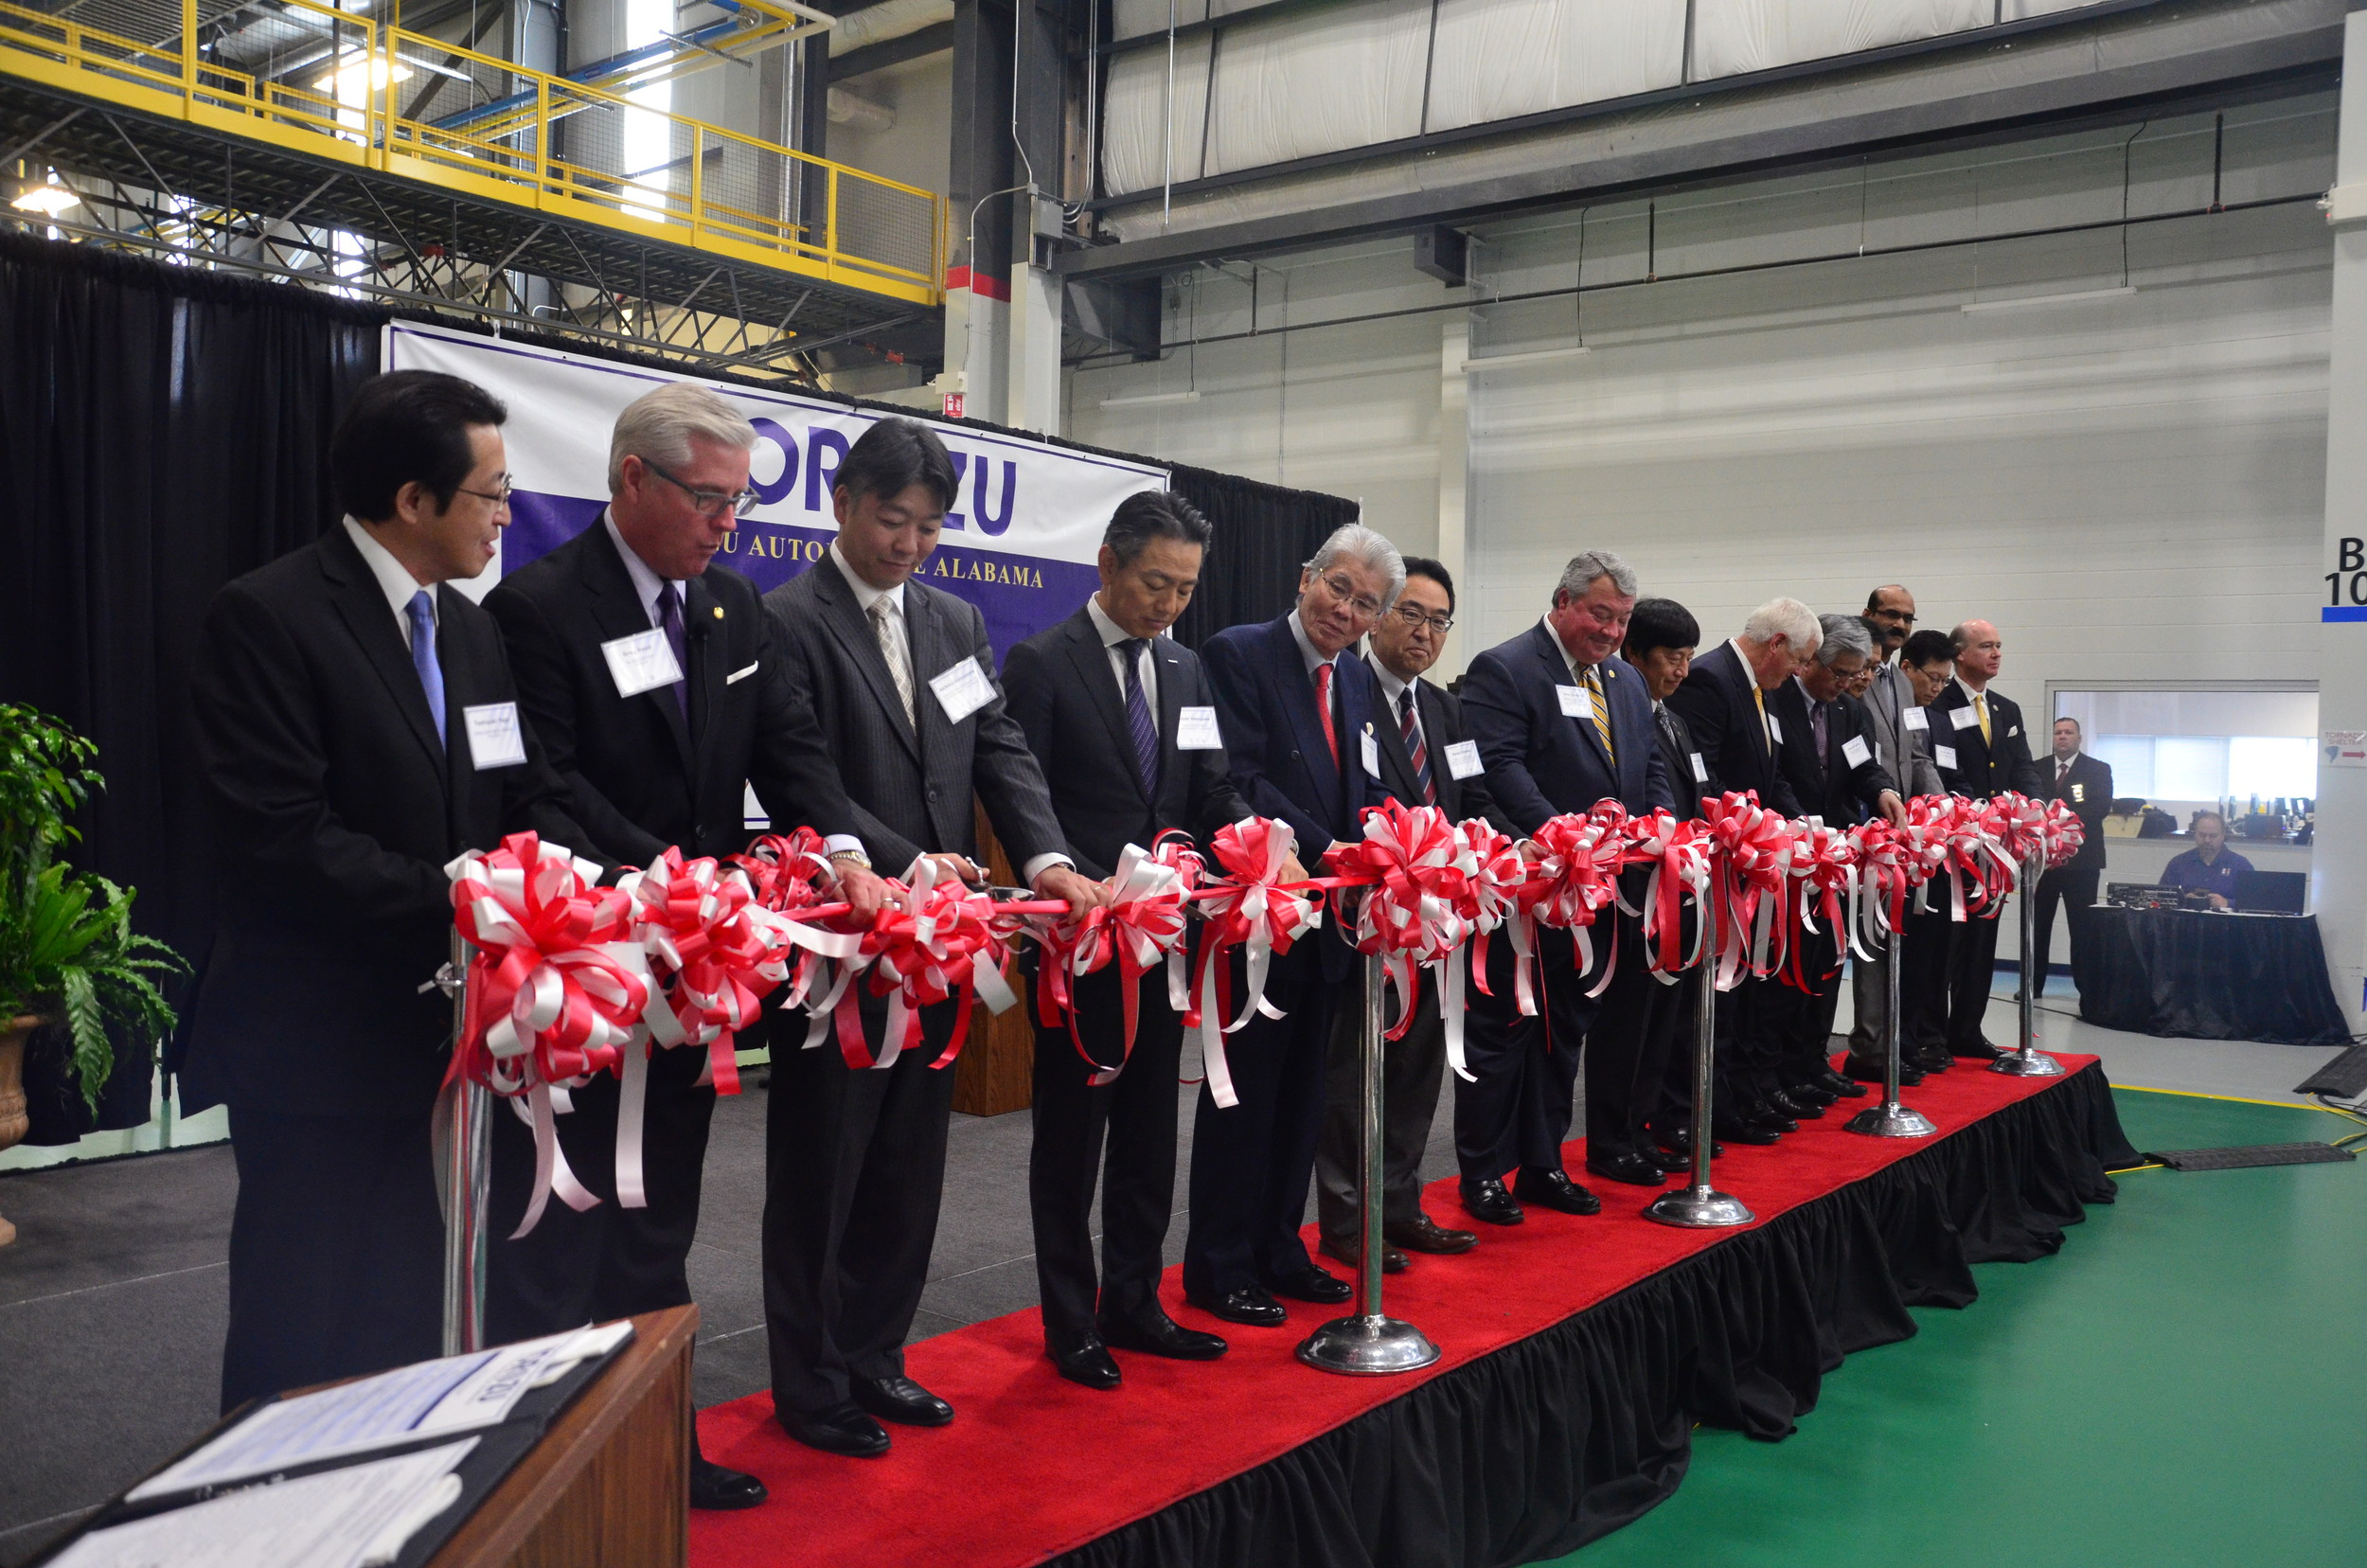 Officials held a ribbon cuttingTuesday to celebrate the grand opening of the Yorozu facility in Jasper.